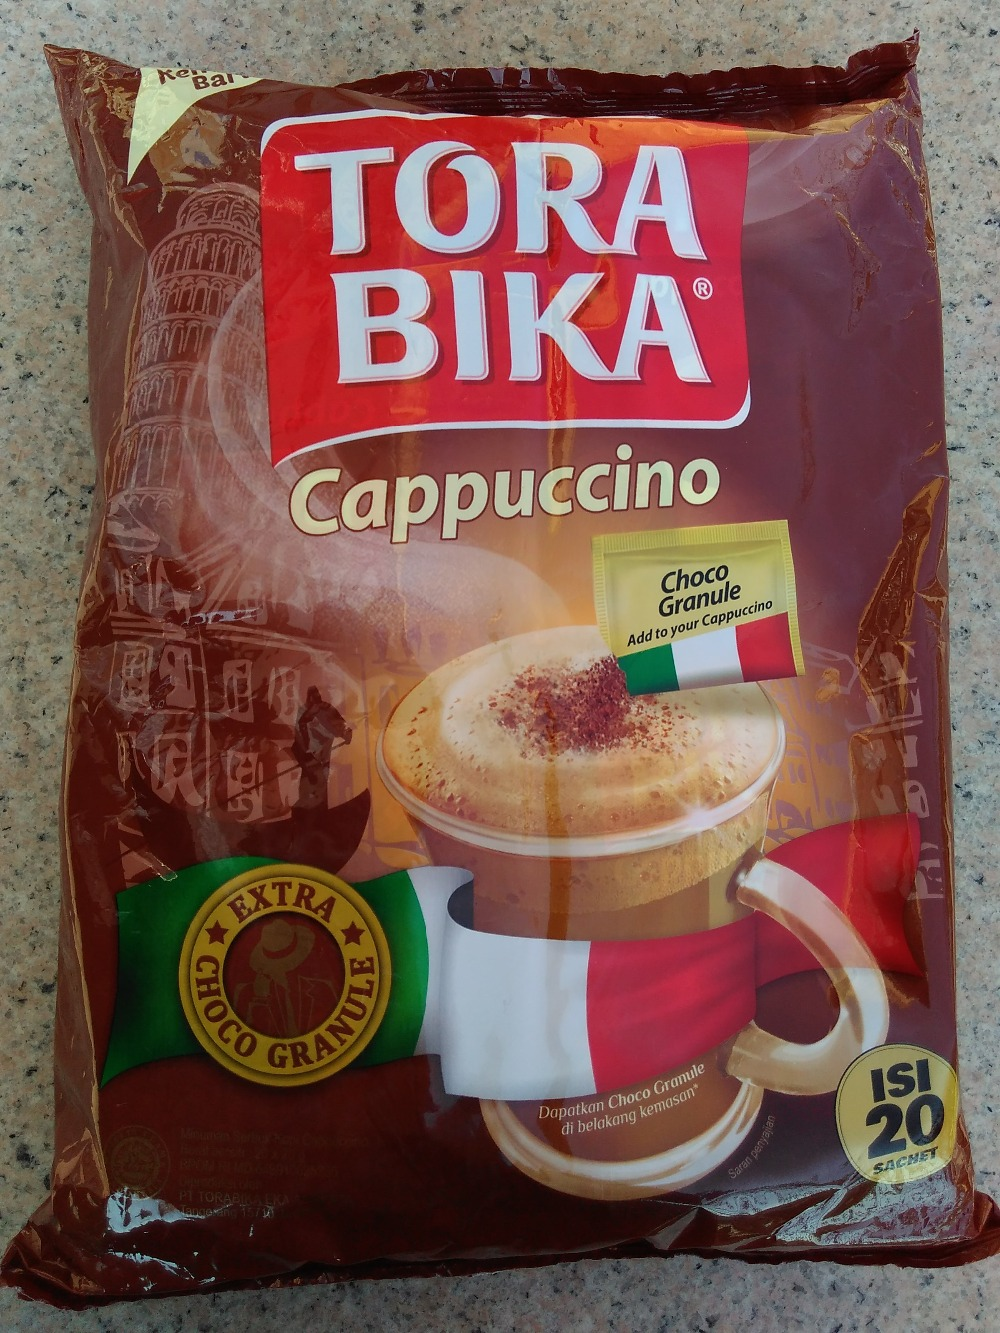 torabika cappuccino Indonesia triple imported original instant white coffee powdered alcohol tassimo cafeteras